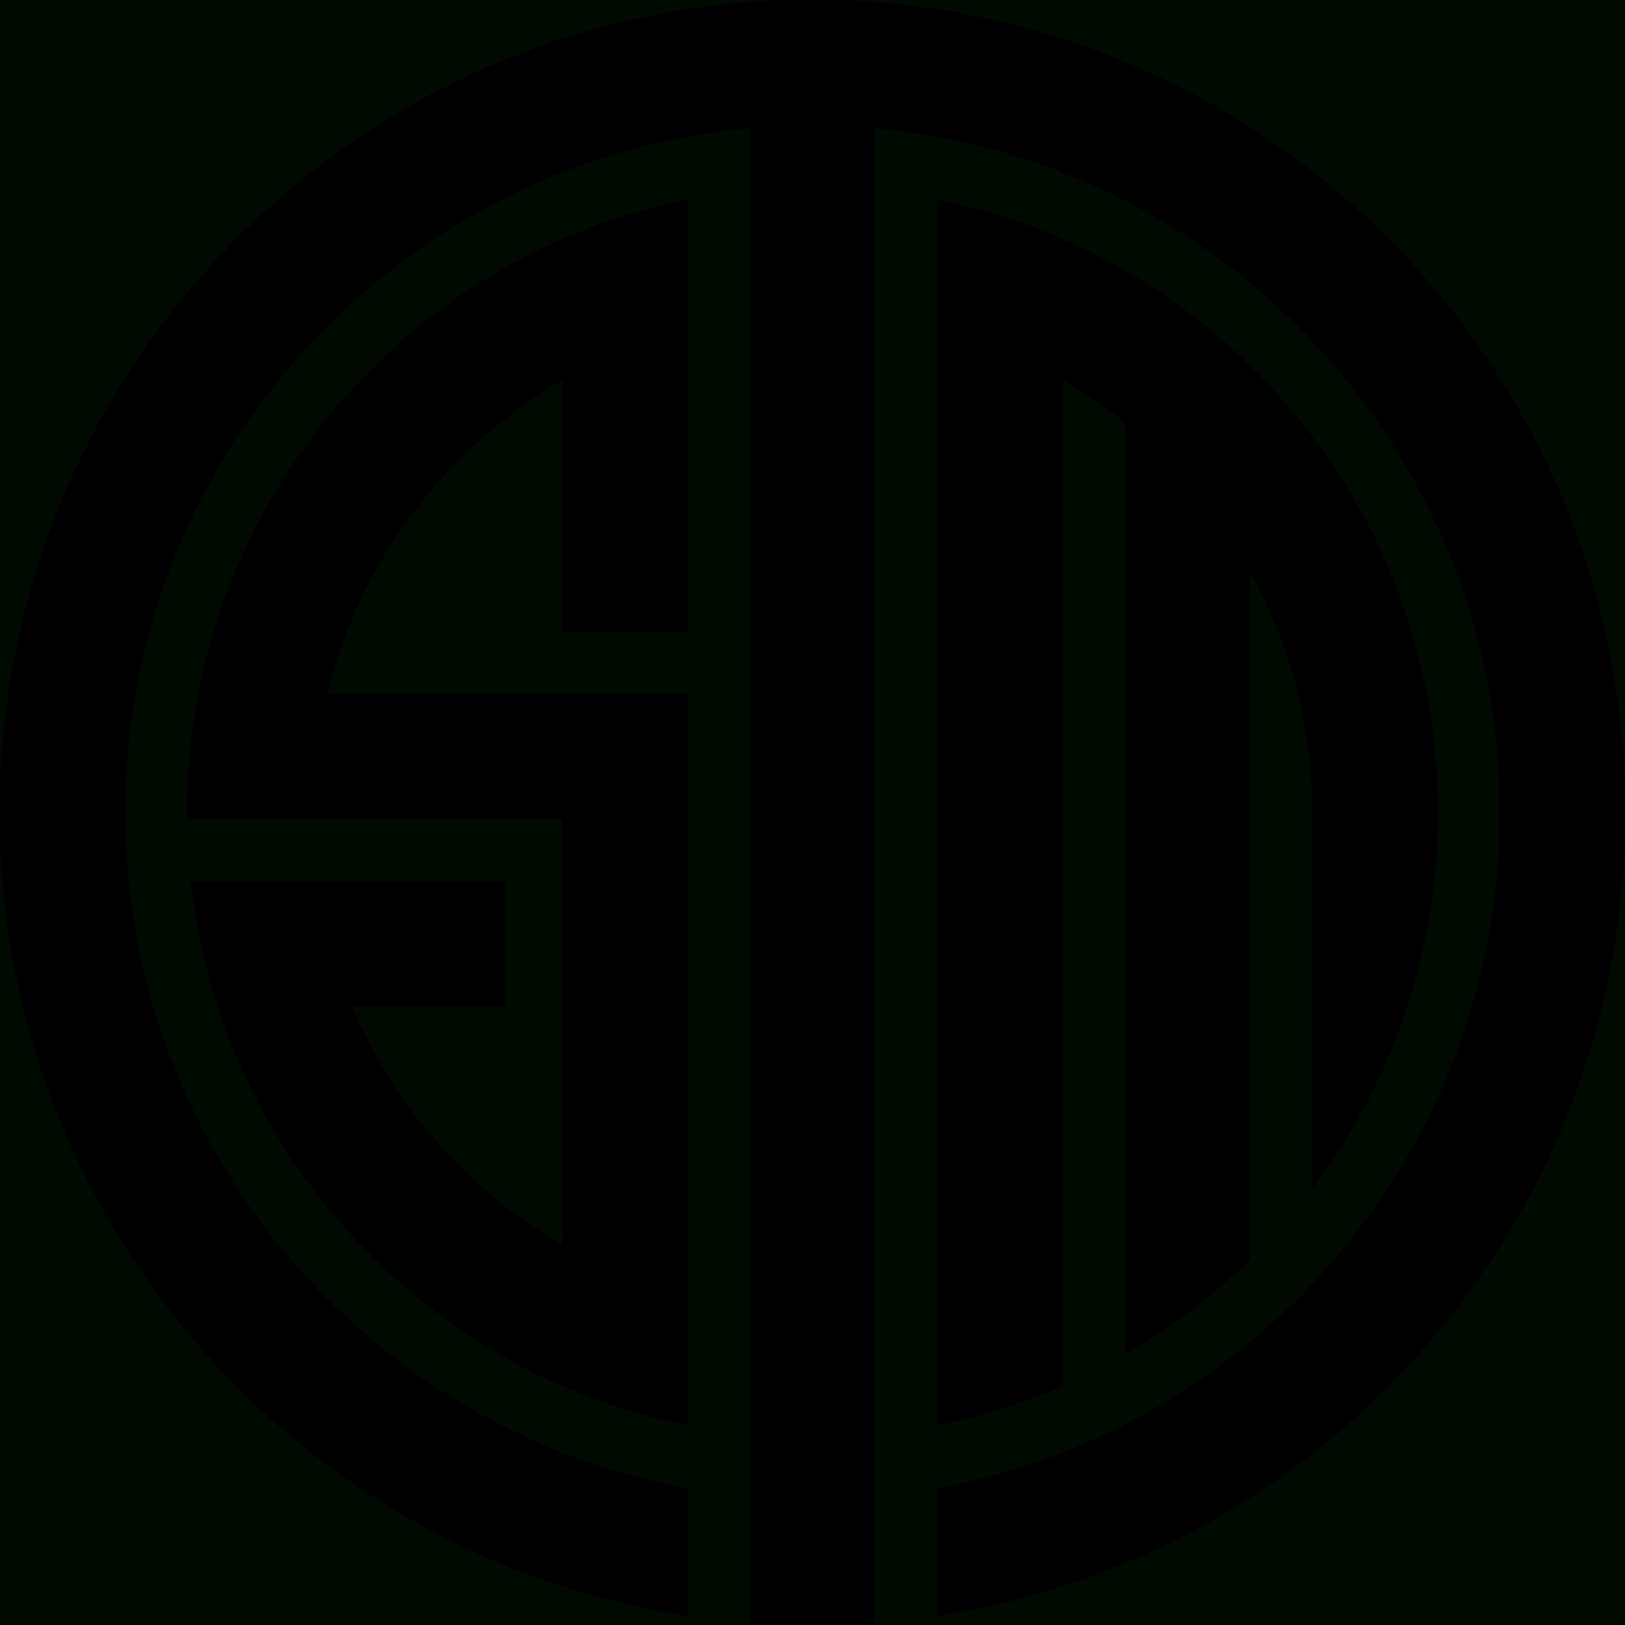 file:team solomid logo - wikimedia commons